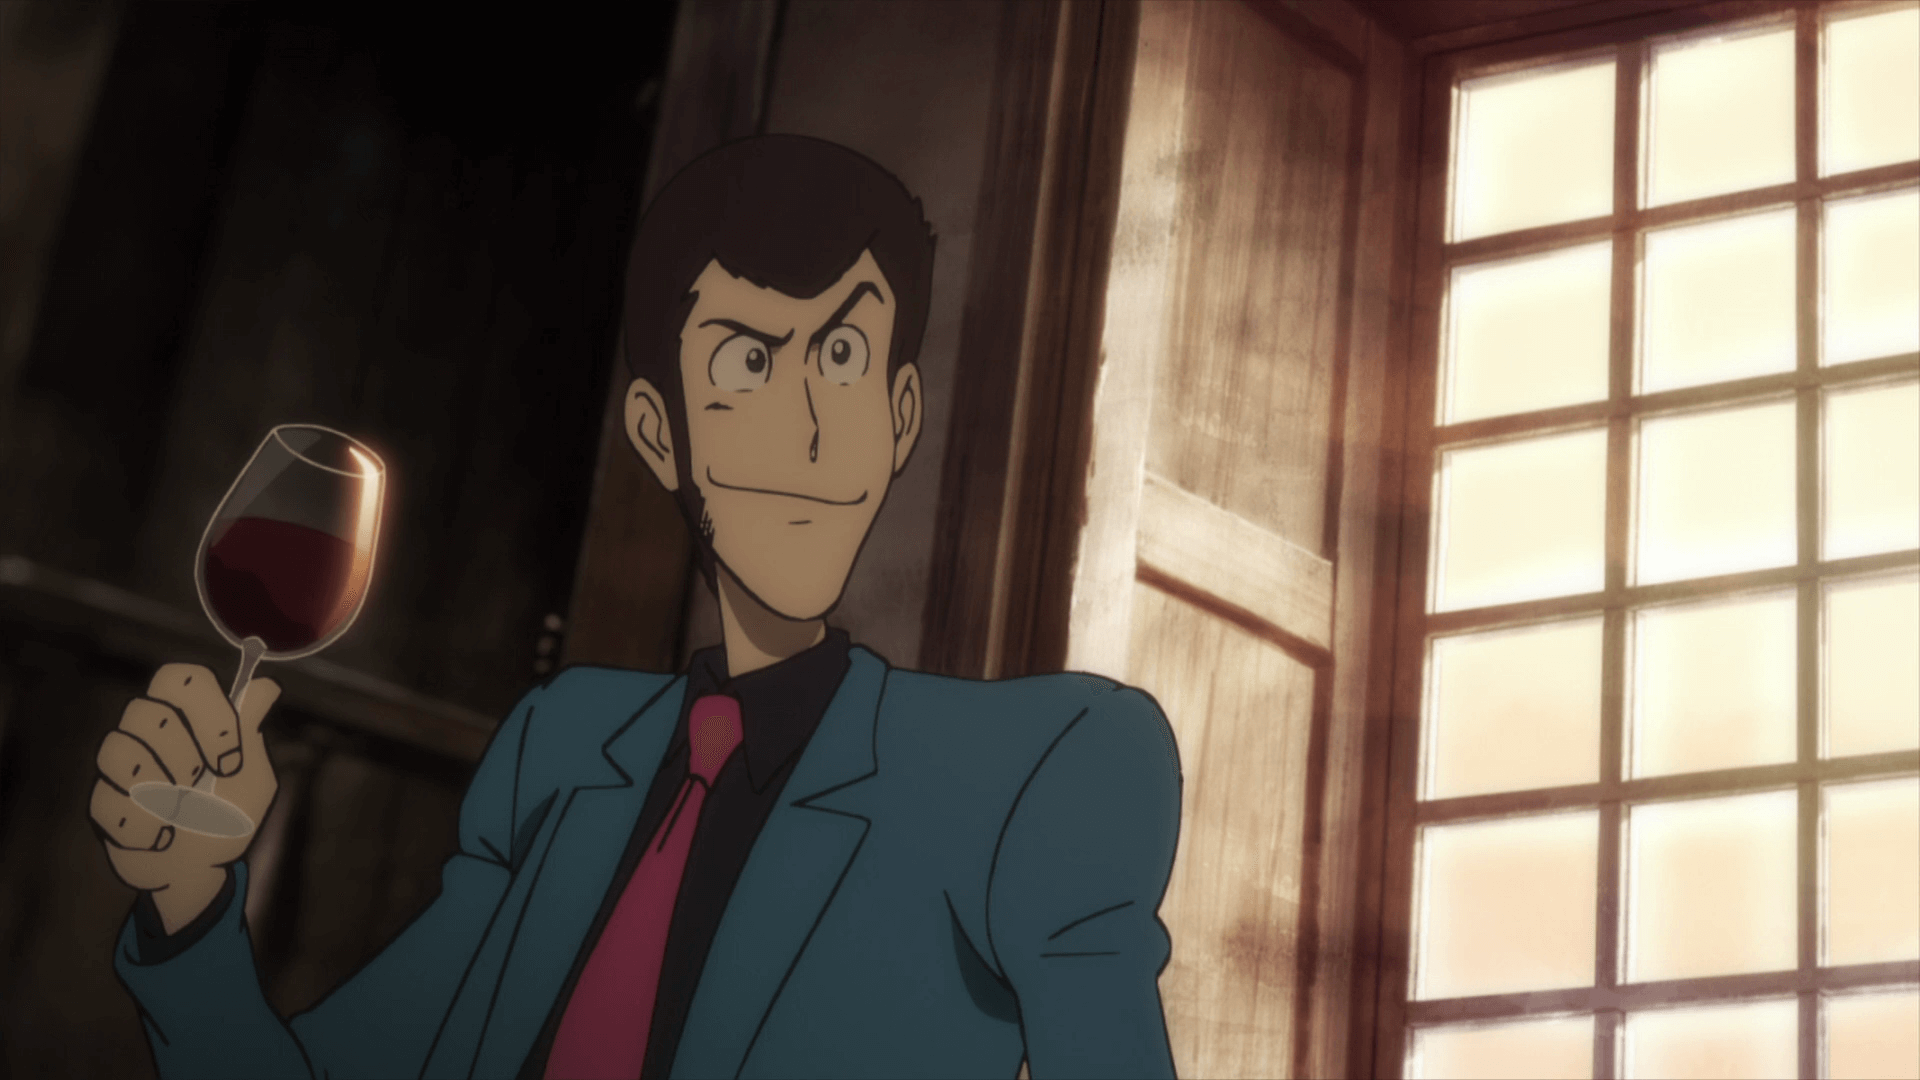 Lupin III Part V 08 001 4592 - Lupin III Part V Episode 08 Subtitle Indonesia